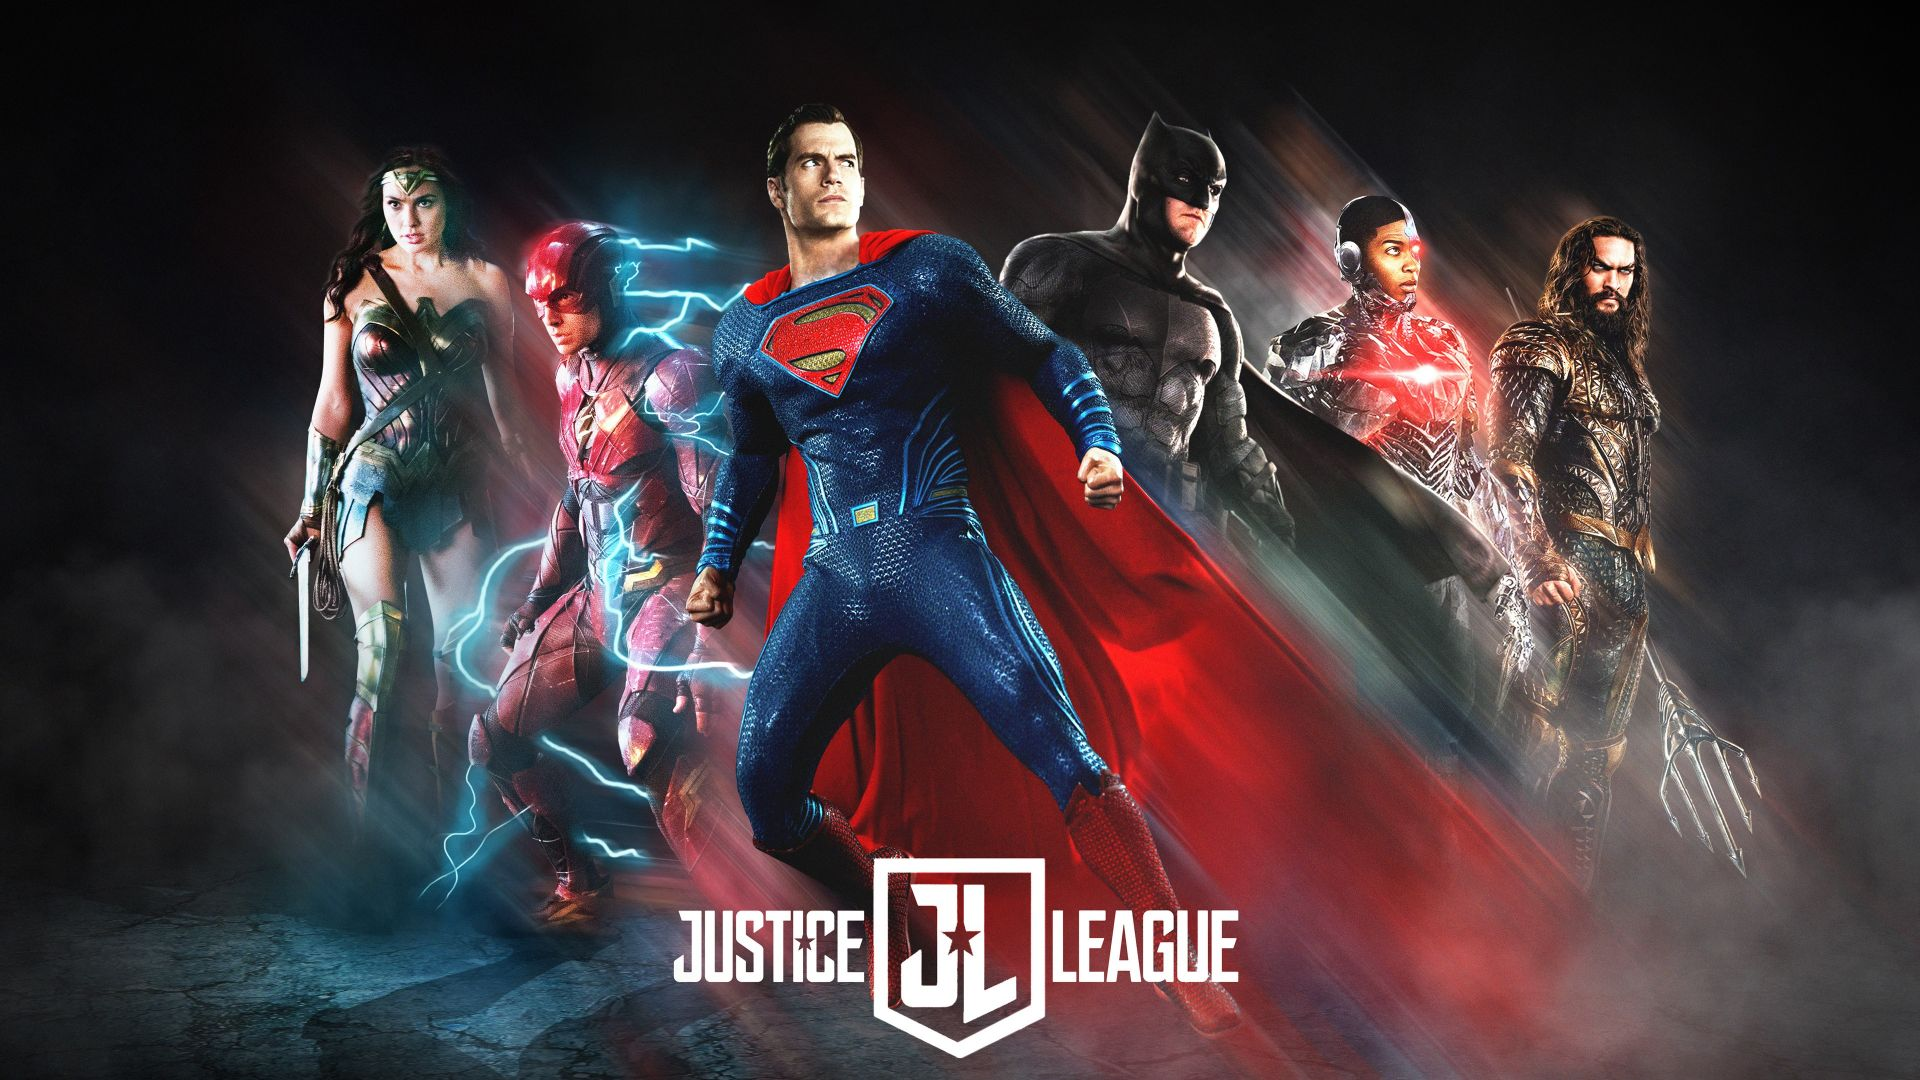 Justice League 2 Release Date Cast Plot Trailer And Everything We Know So Far Thenationroar